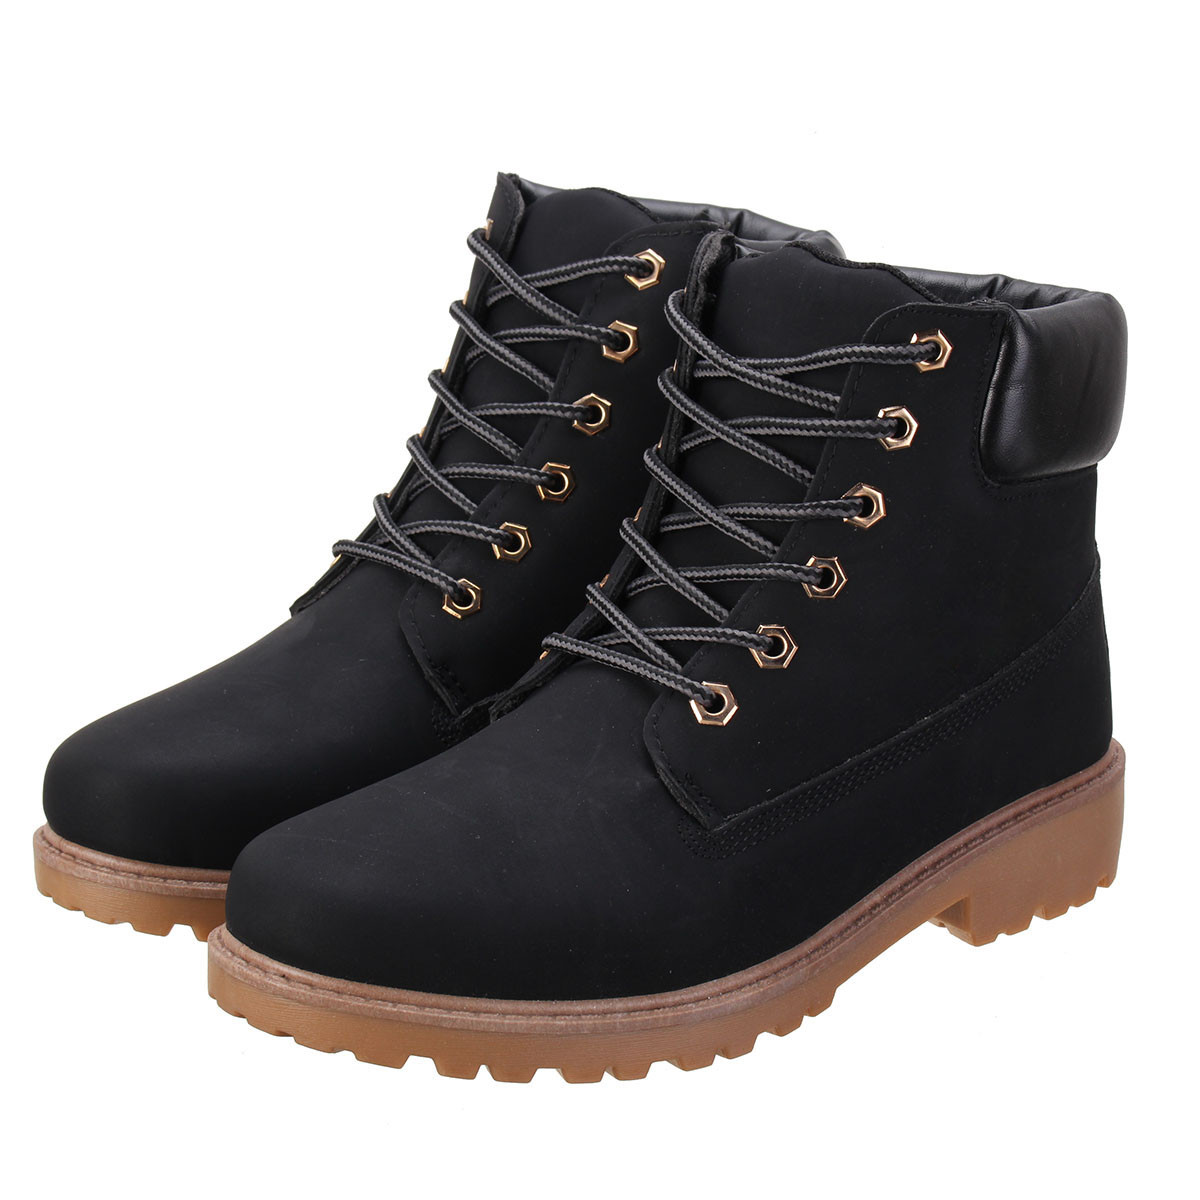 Mens Boots For Sale UFArhODh